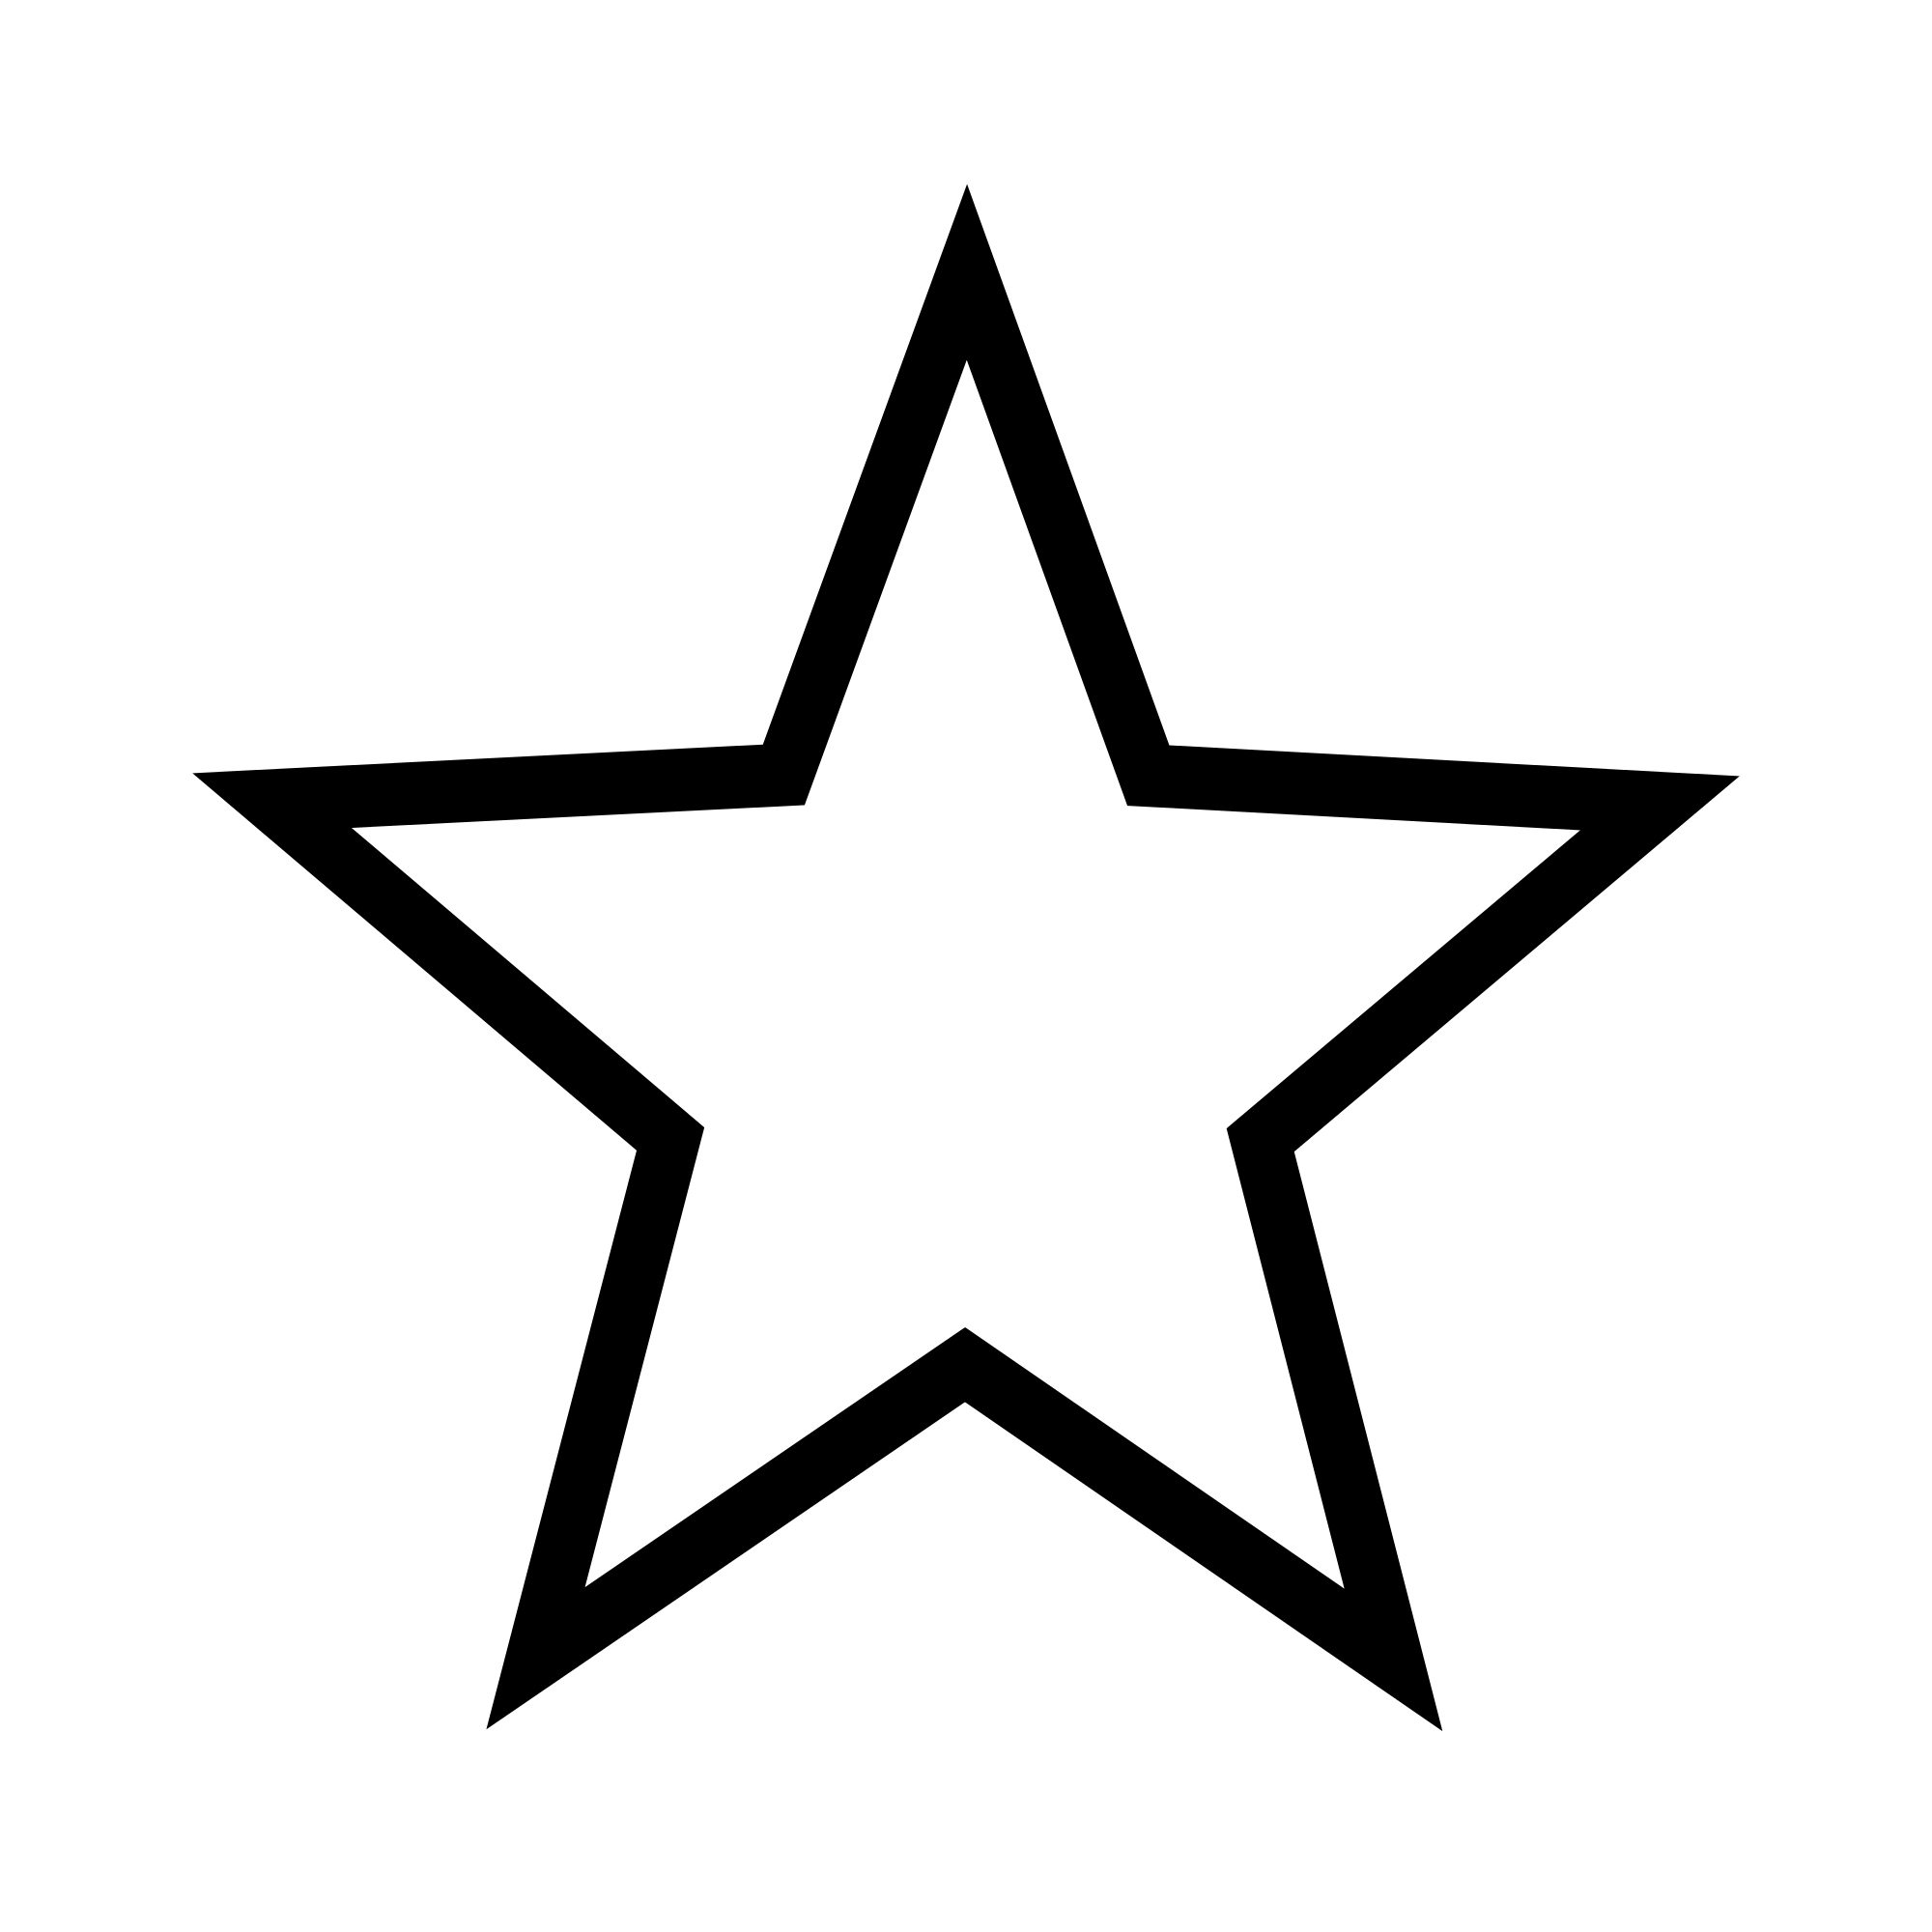 White Star No Background - ClipArt Best